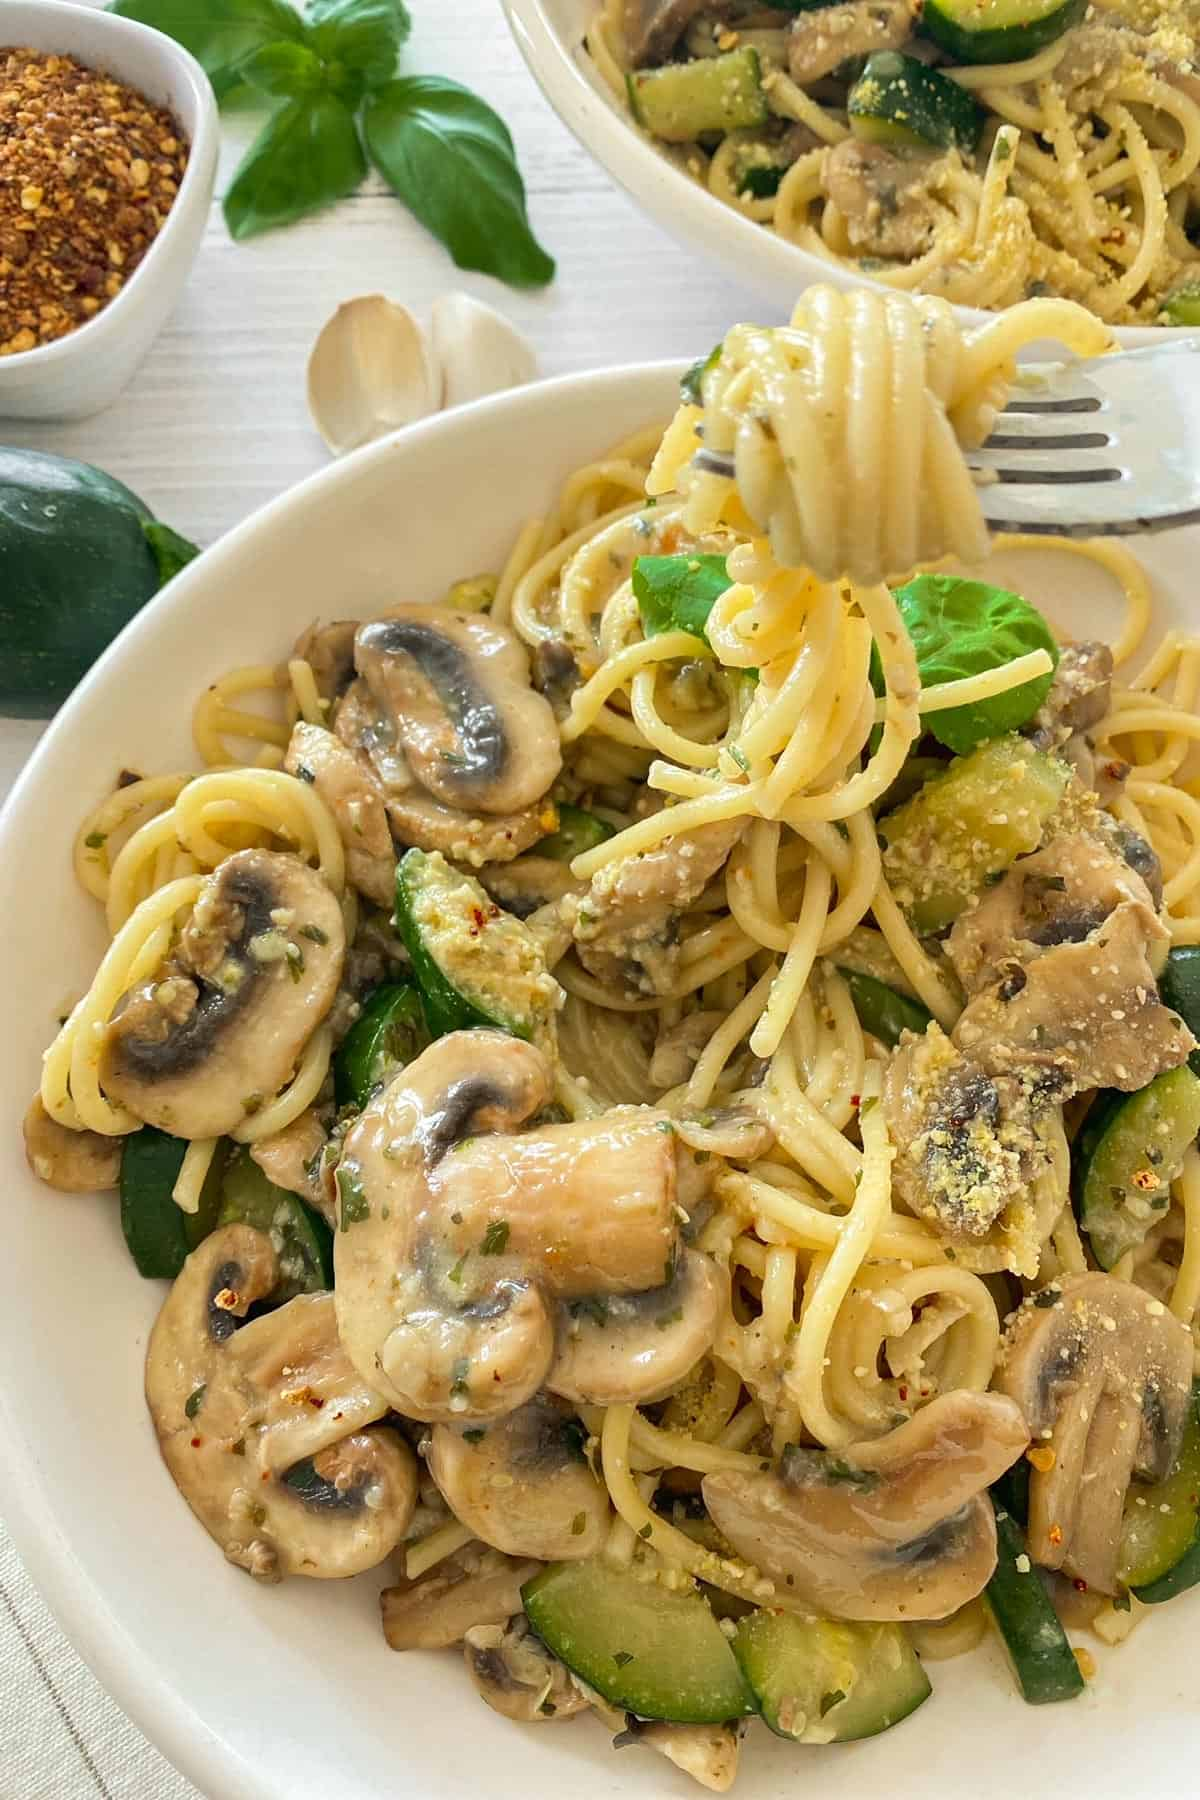 Plate of spaghetti with mushrooms and zucchini with a bite twirled around fork.